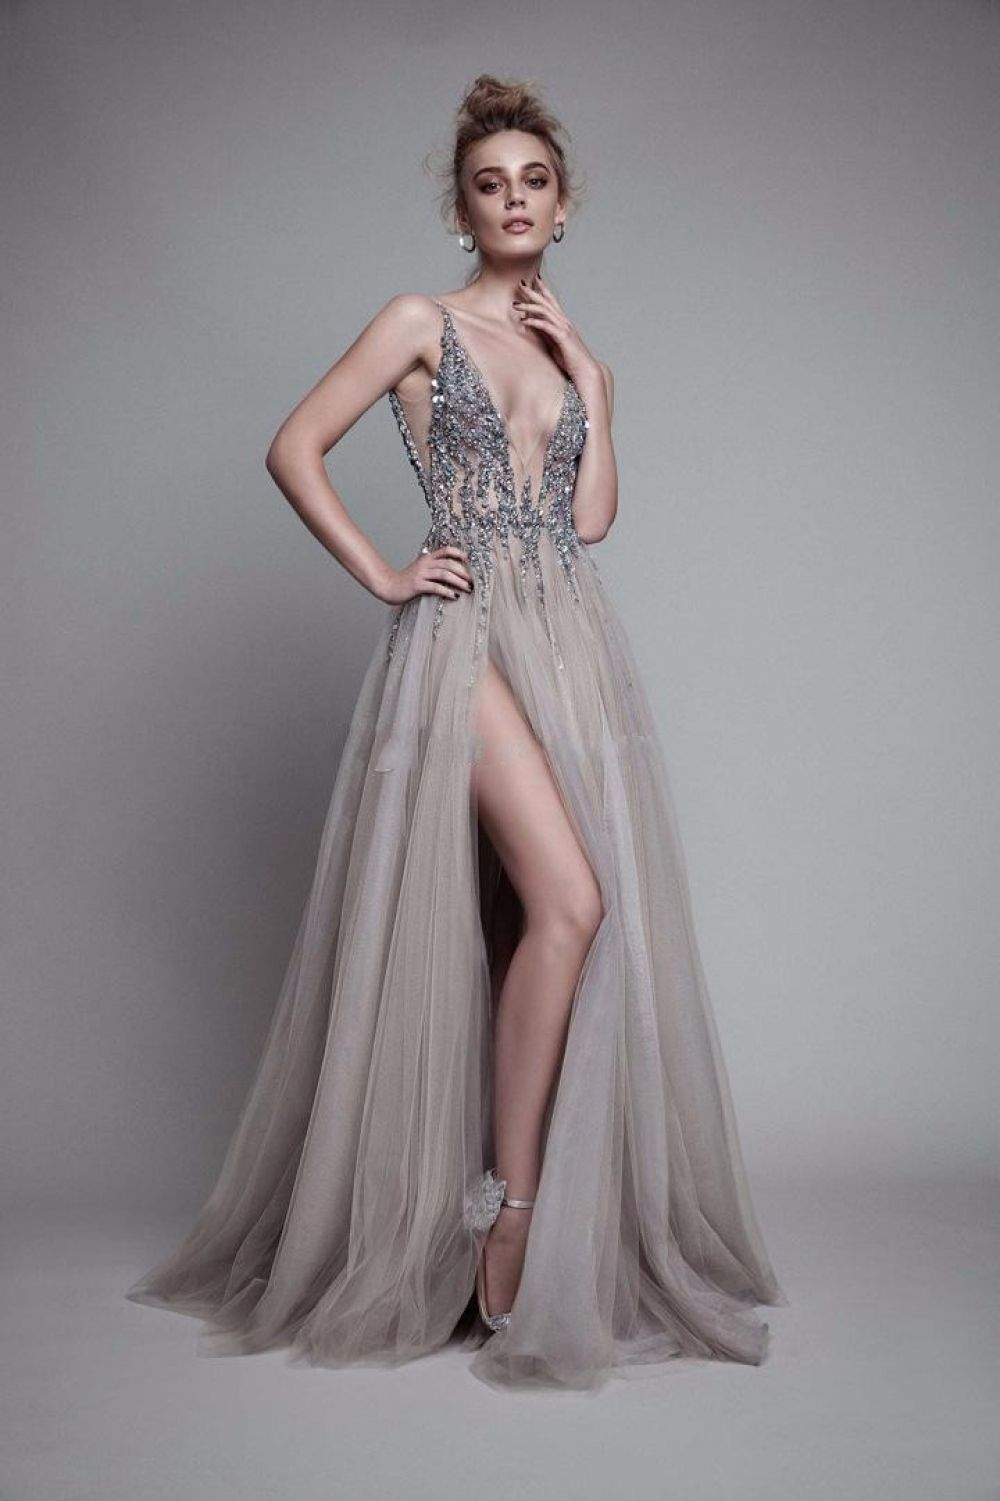 1aa3dc5dd356d Sexy Paolo Sebastian Evening Dresses 2017 Deep V Neck Sequins Tulle High  Split Long Gray Prom Dress Sheer Backless Party Dress